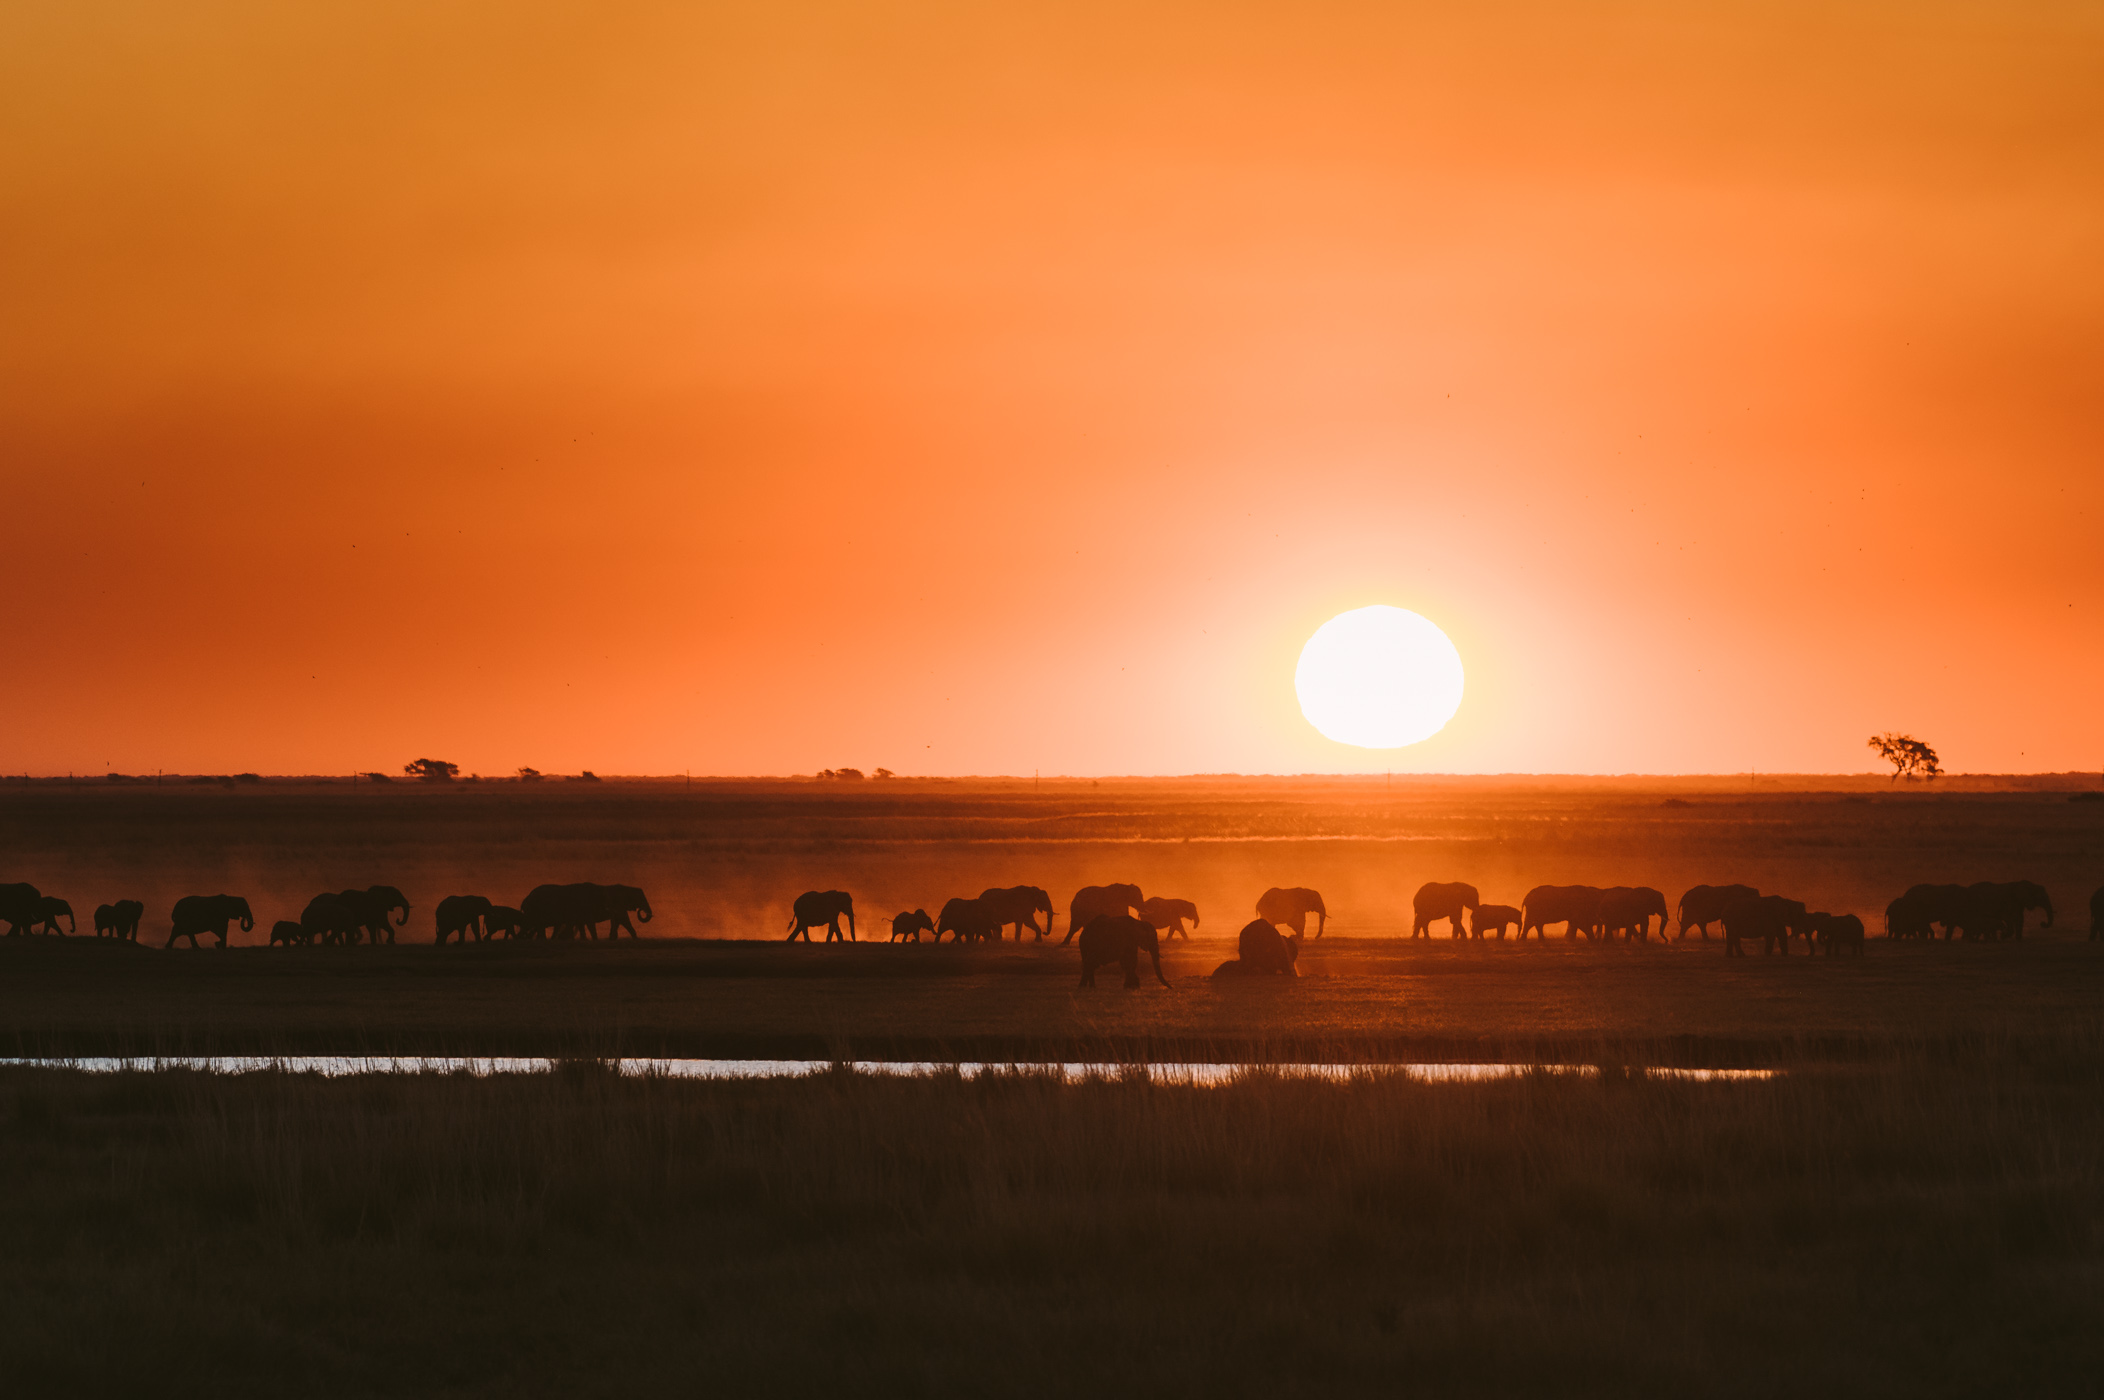 Elephants in Botswana's Chobe National Park